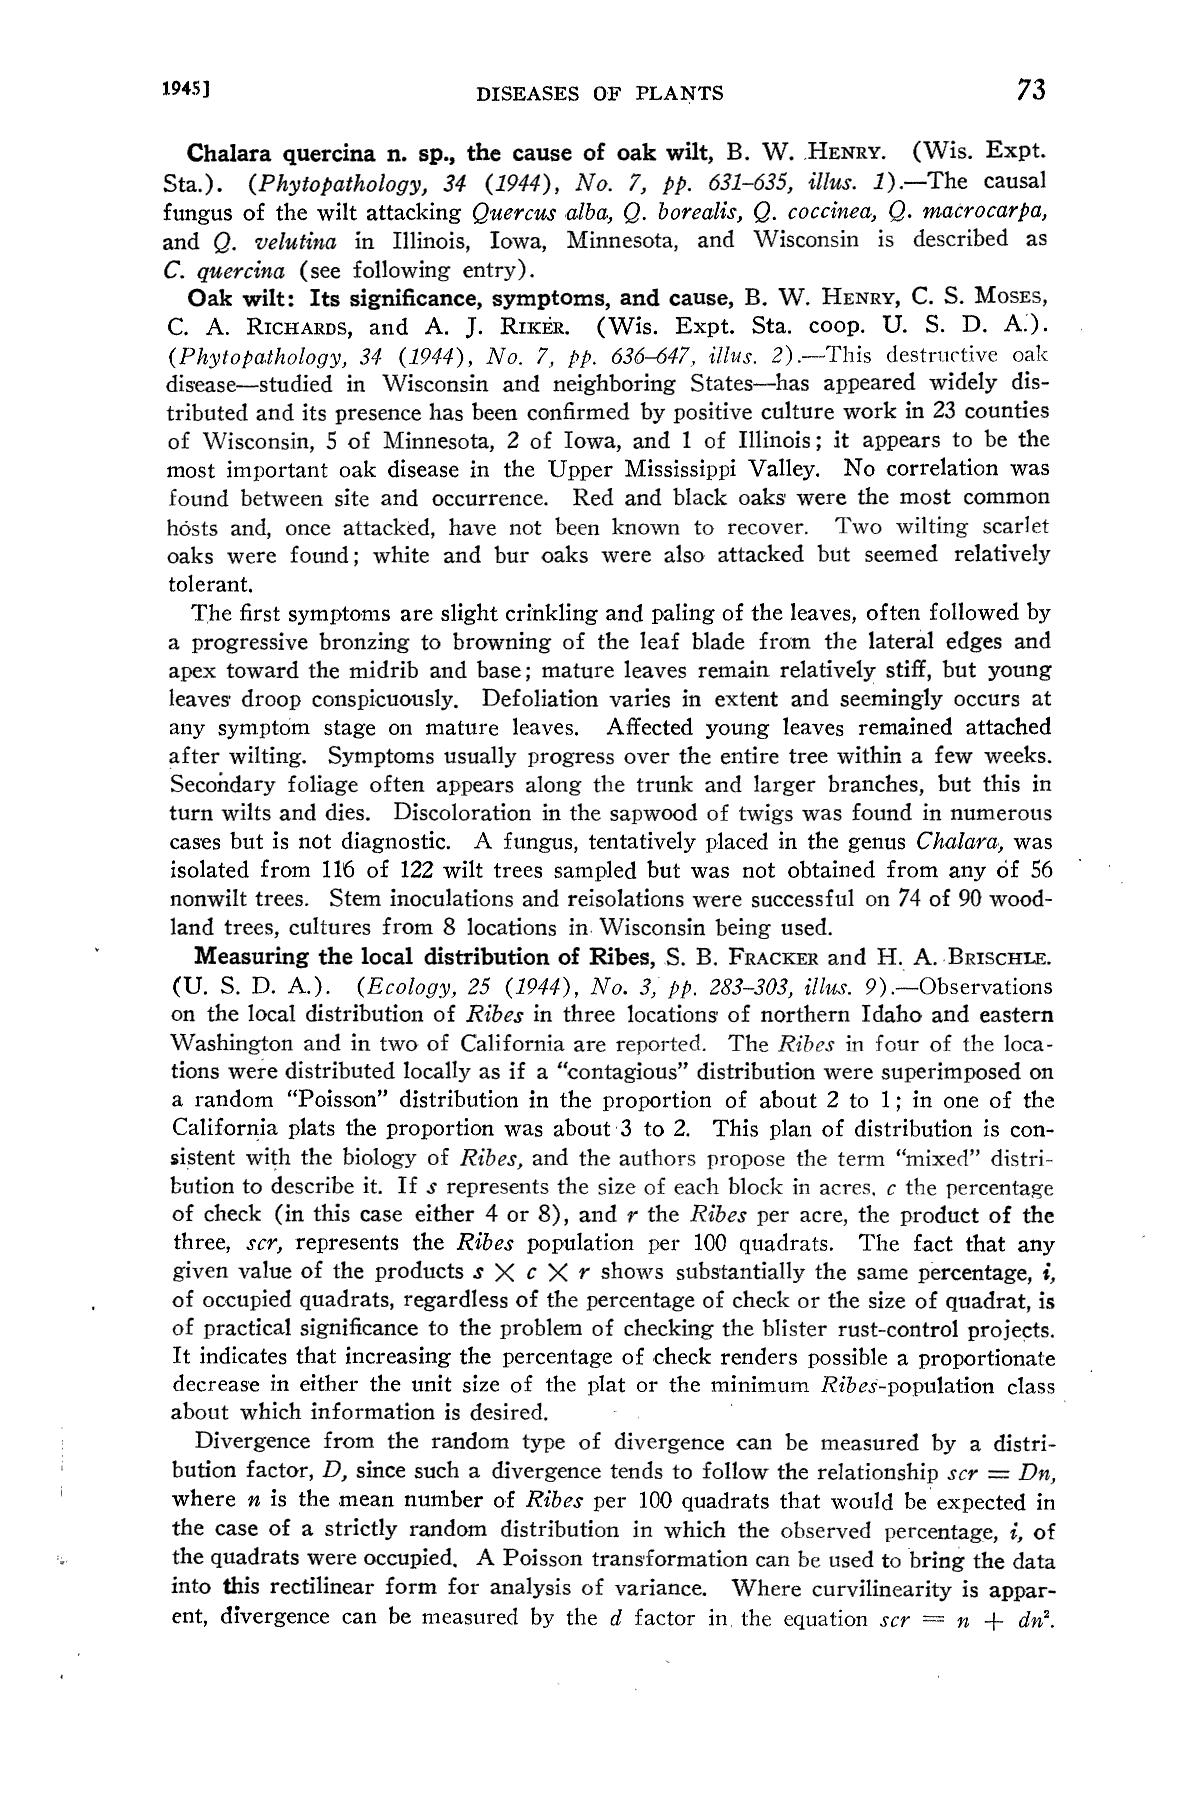 Experiment Station Record, Volume 92, January-June, 1945                                                                                                      73